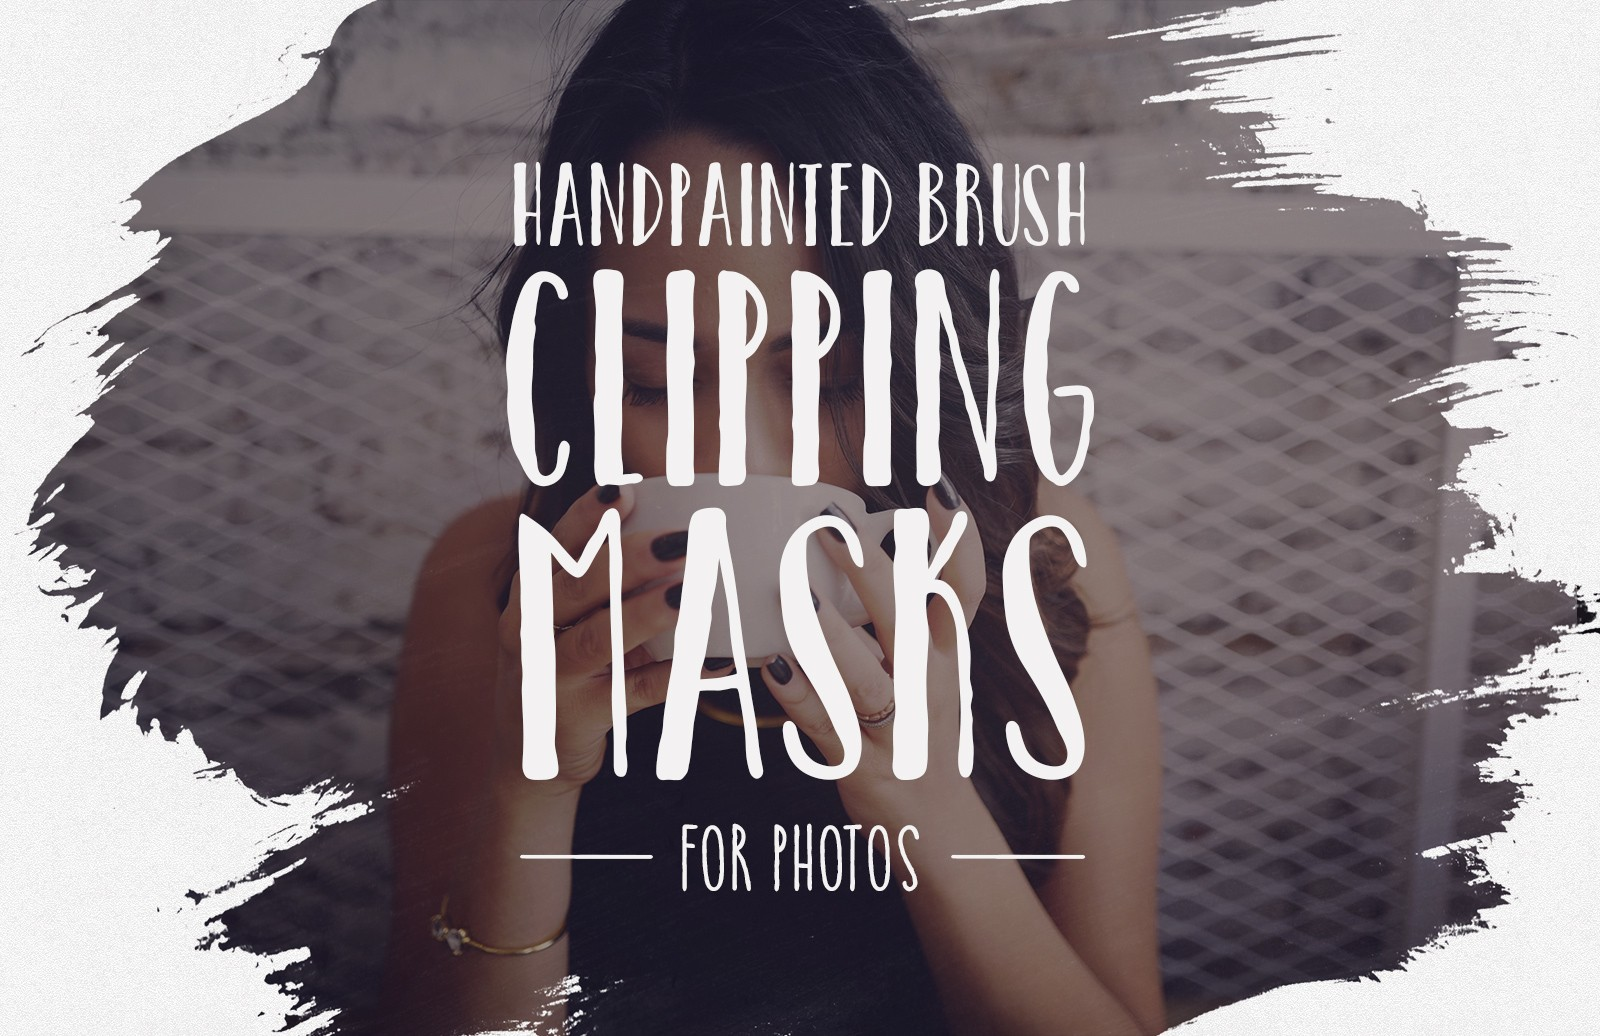 Hand  Painted  Brush  Clipping  Masks  Preview 1